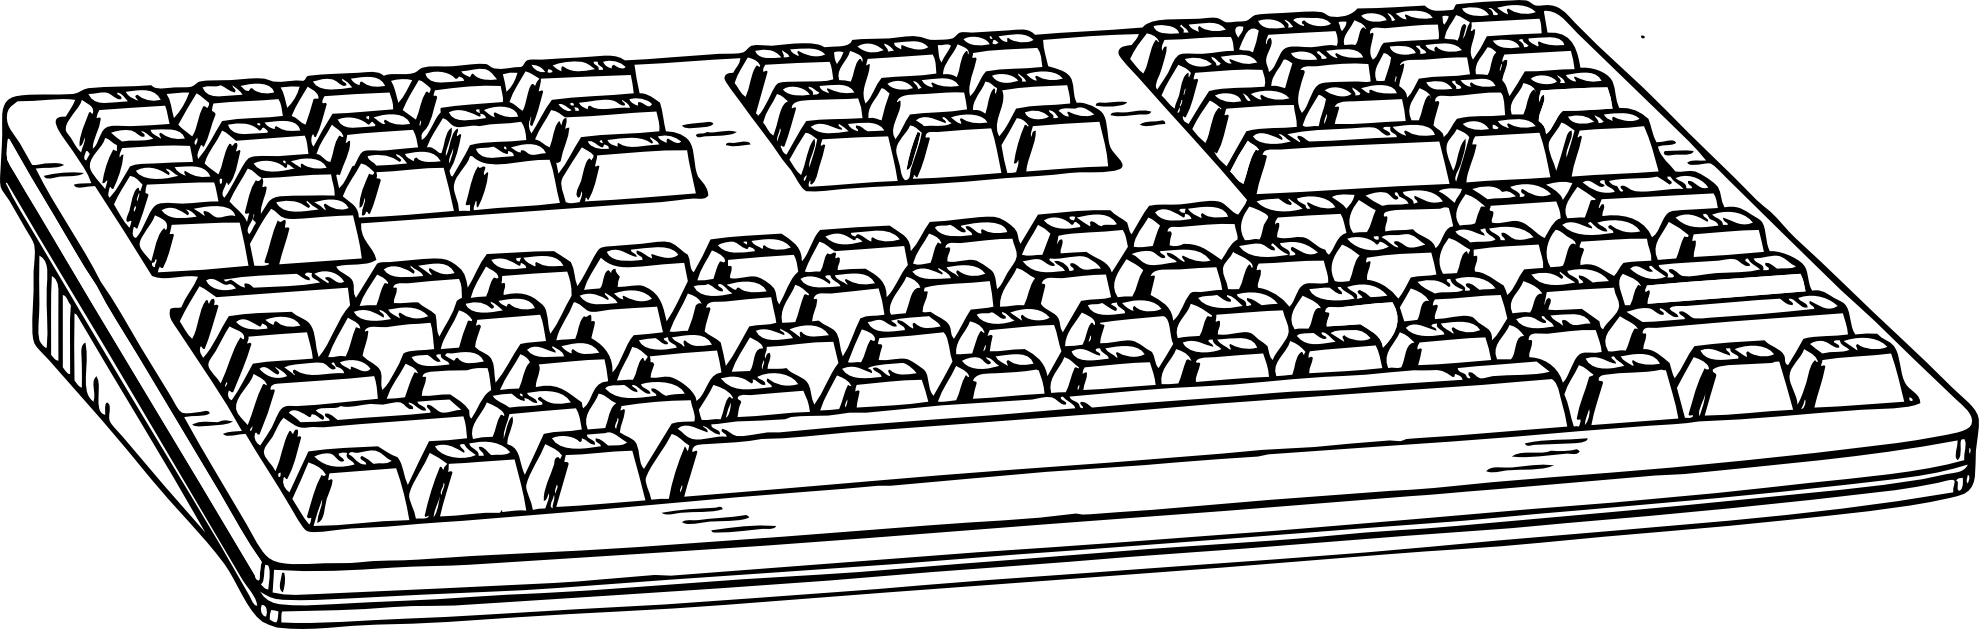 Computer clip art black and white. Clipart of keyboard kid